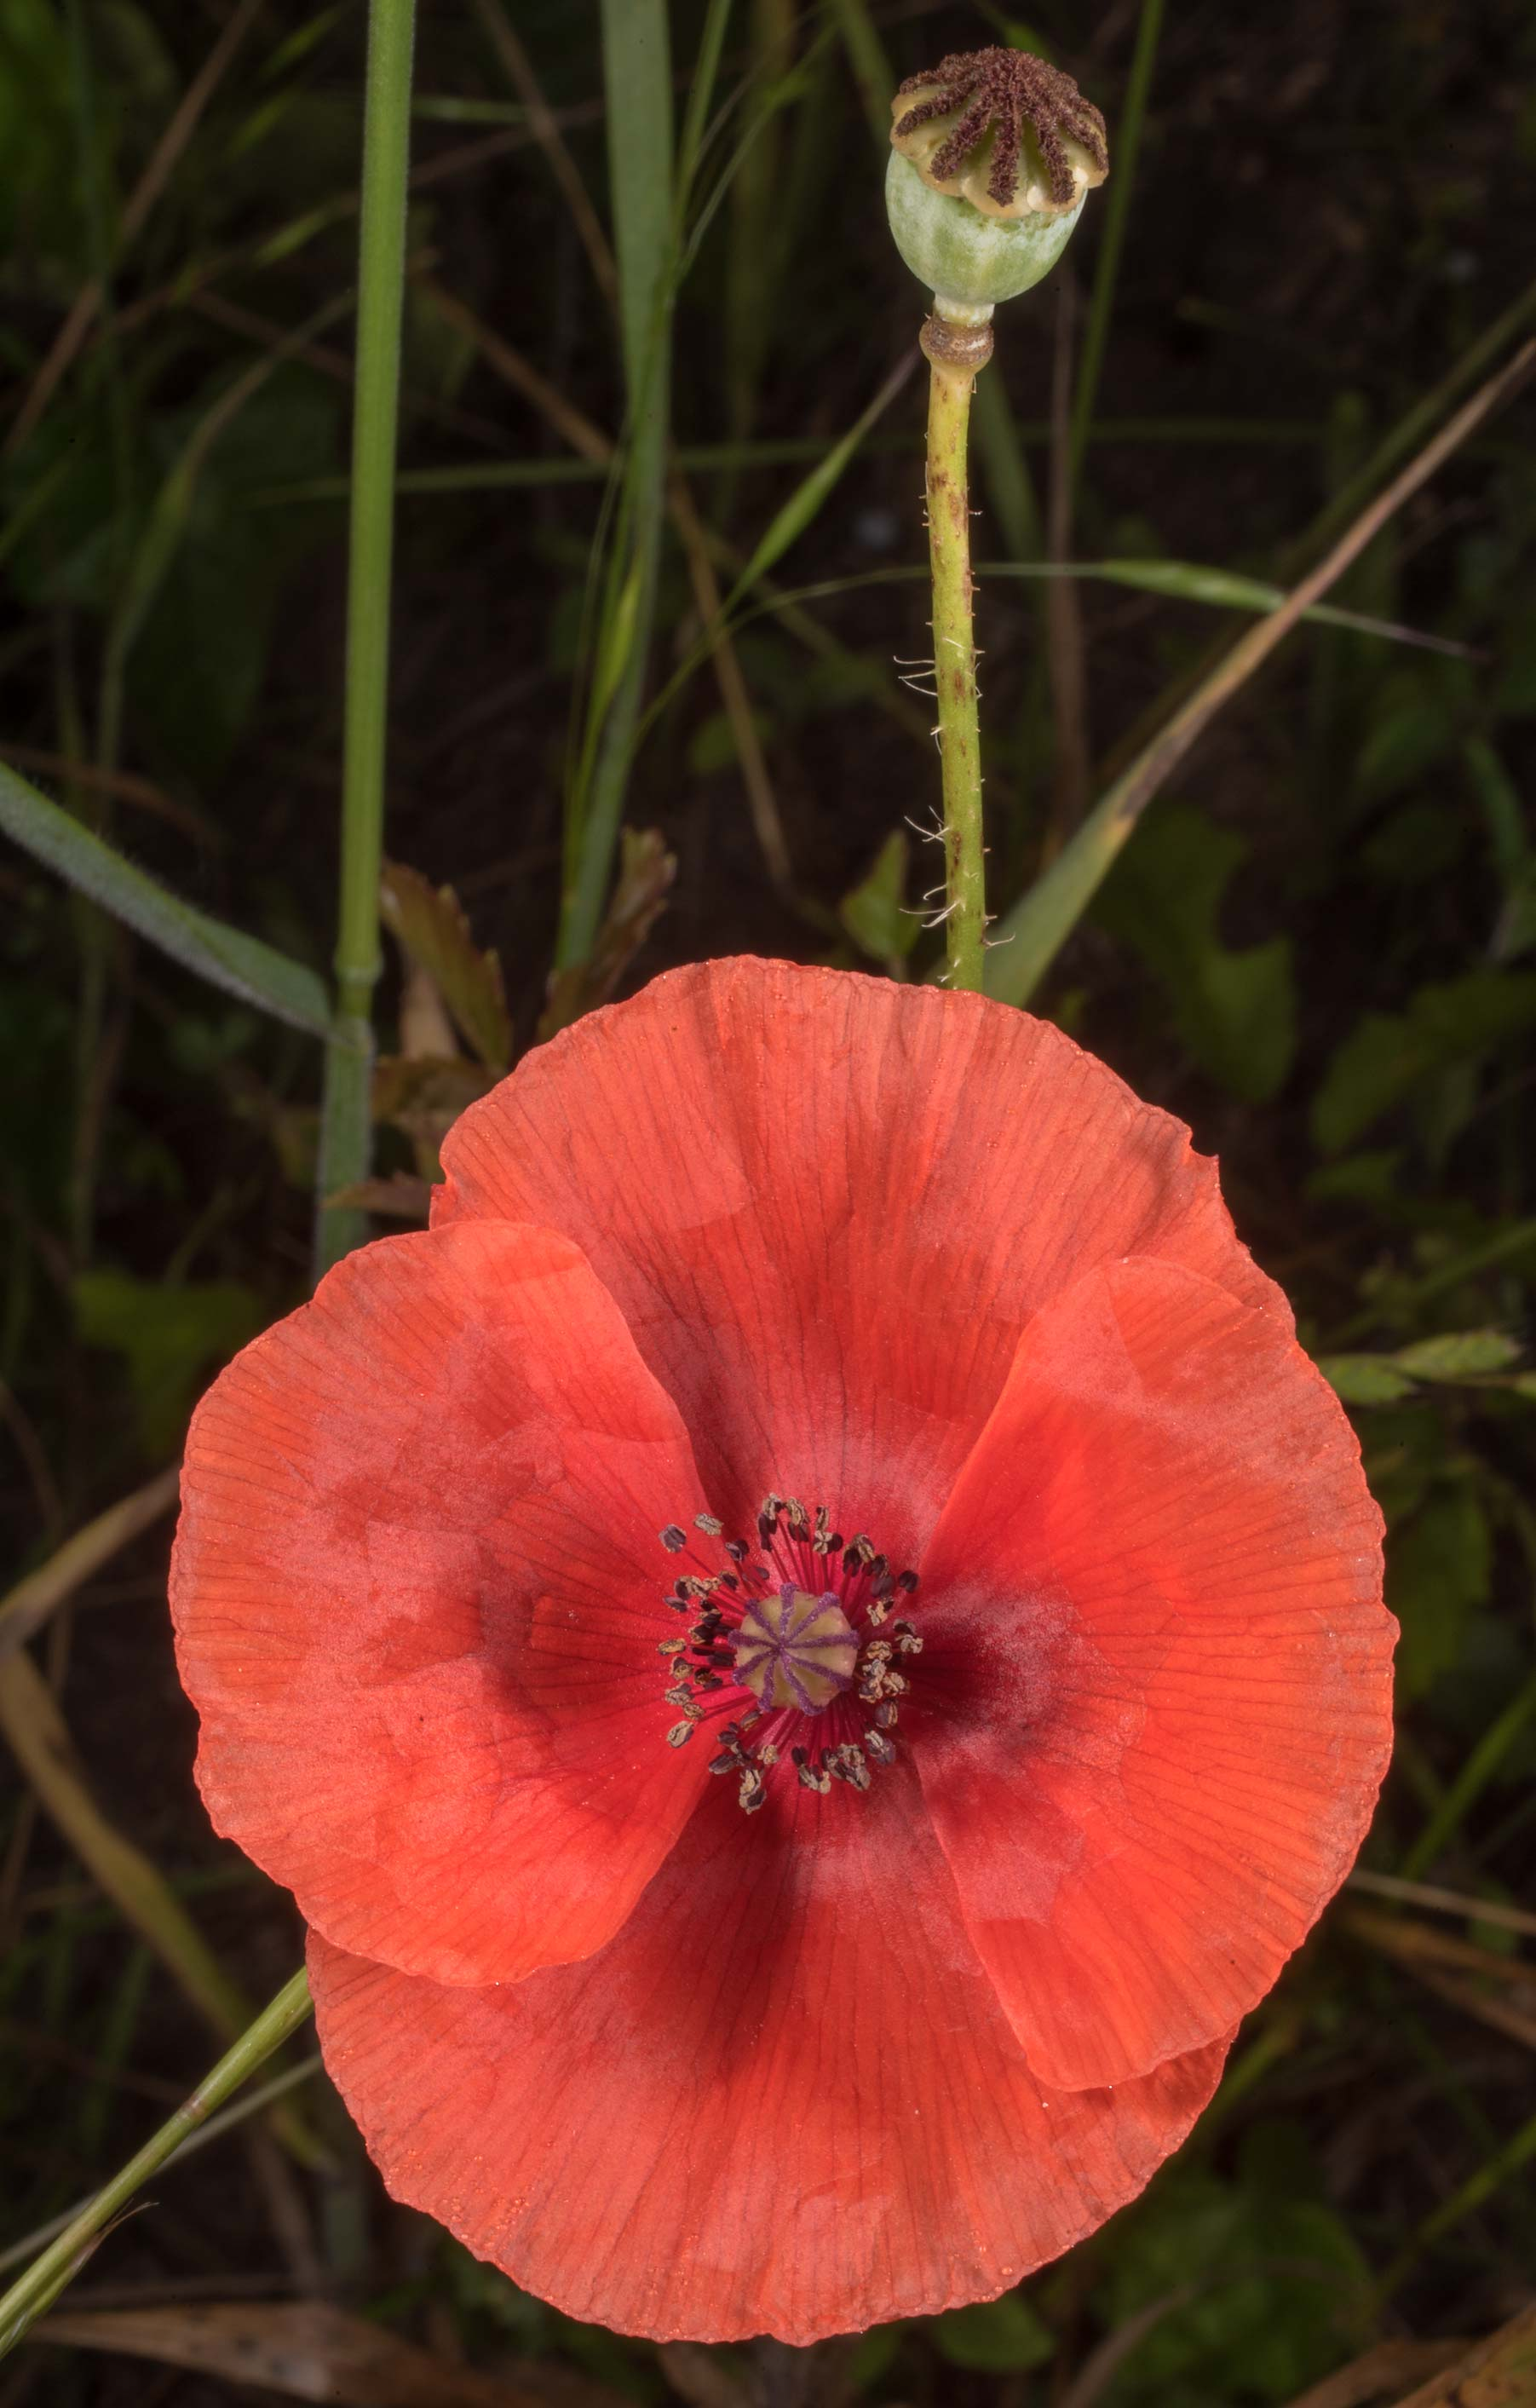 Common red corn poppy (Papaver rhoeas) on...State Historic Site. Washington, Texas